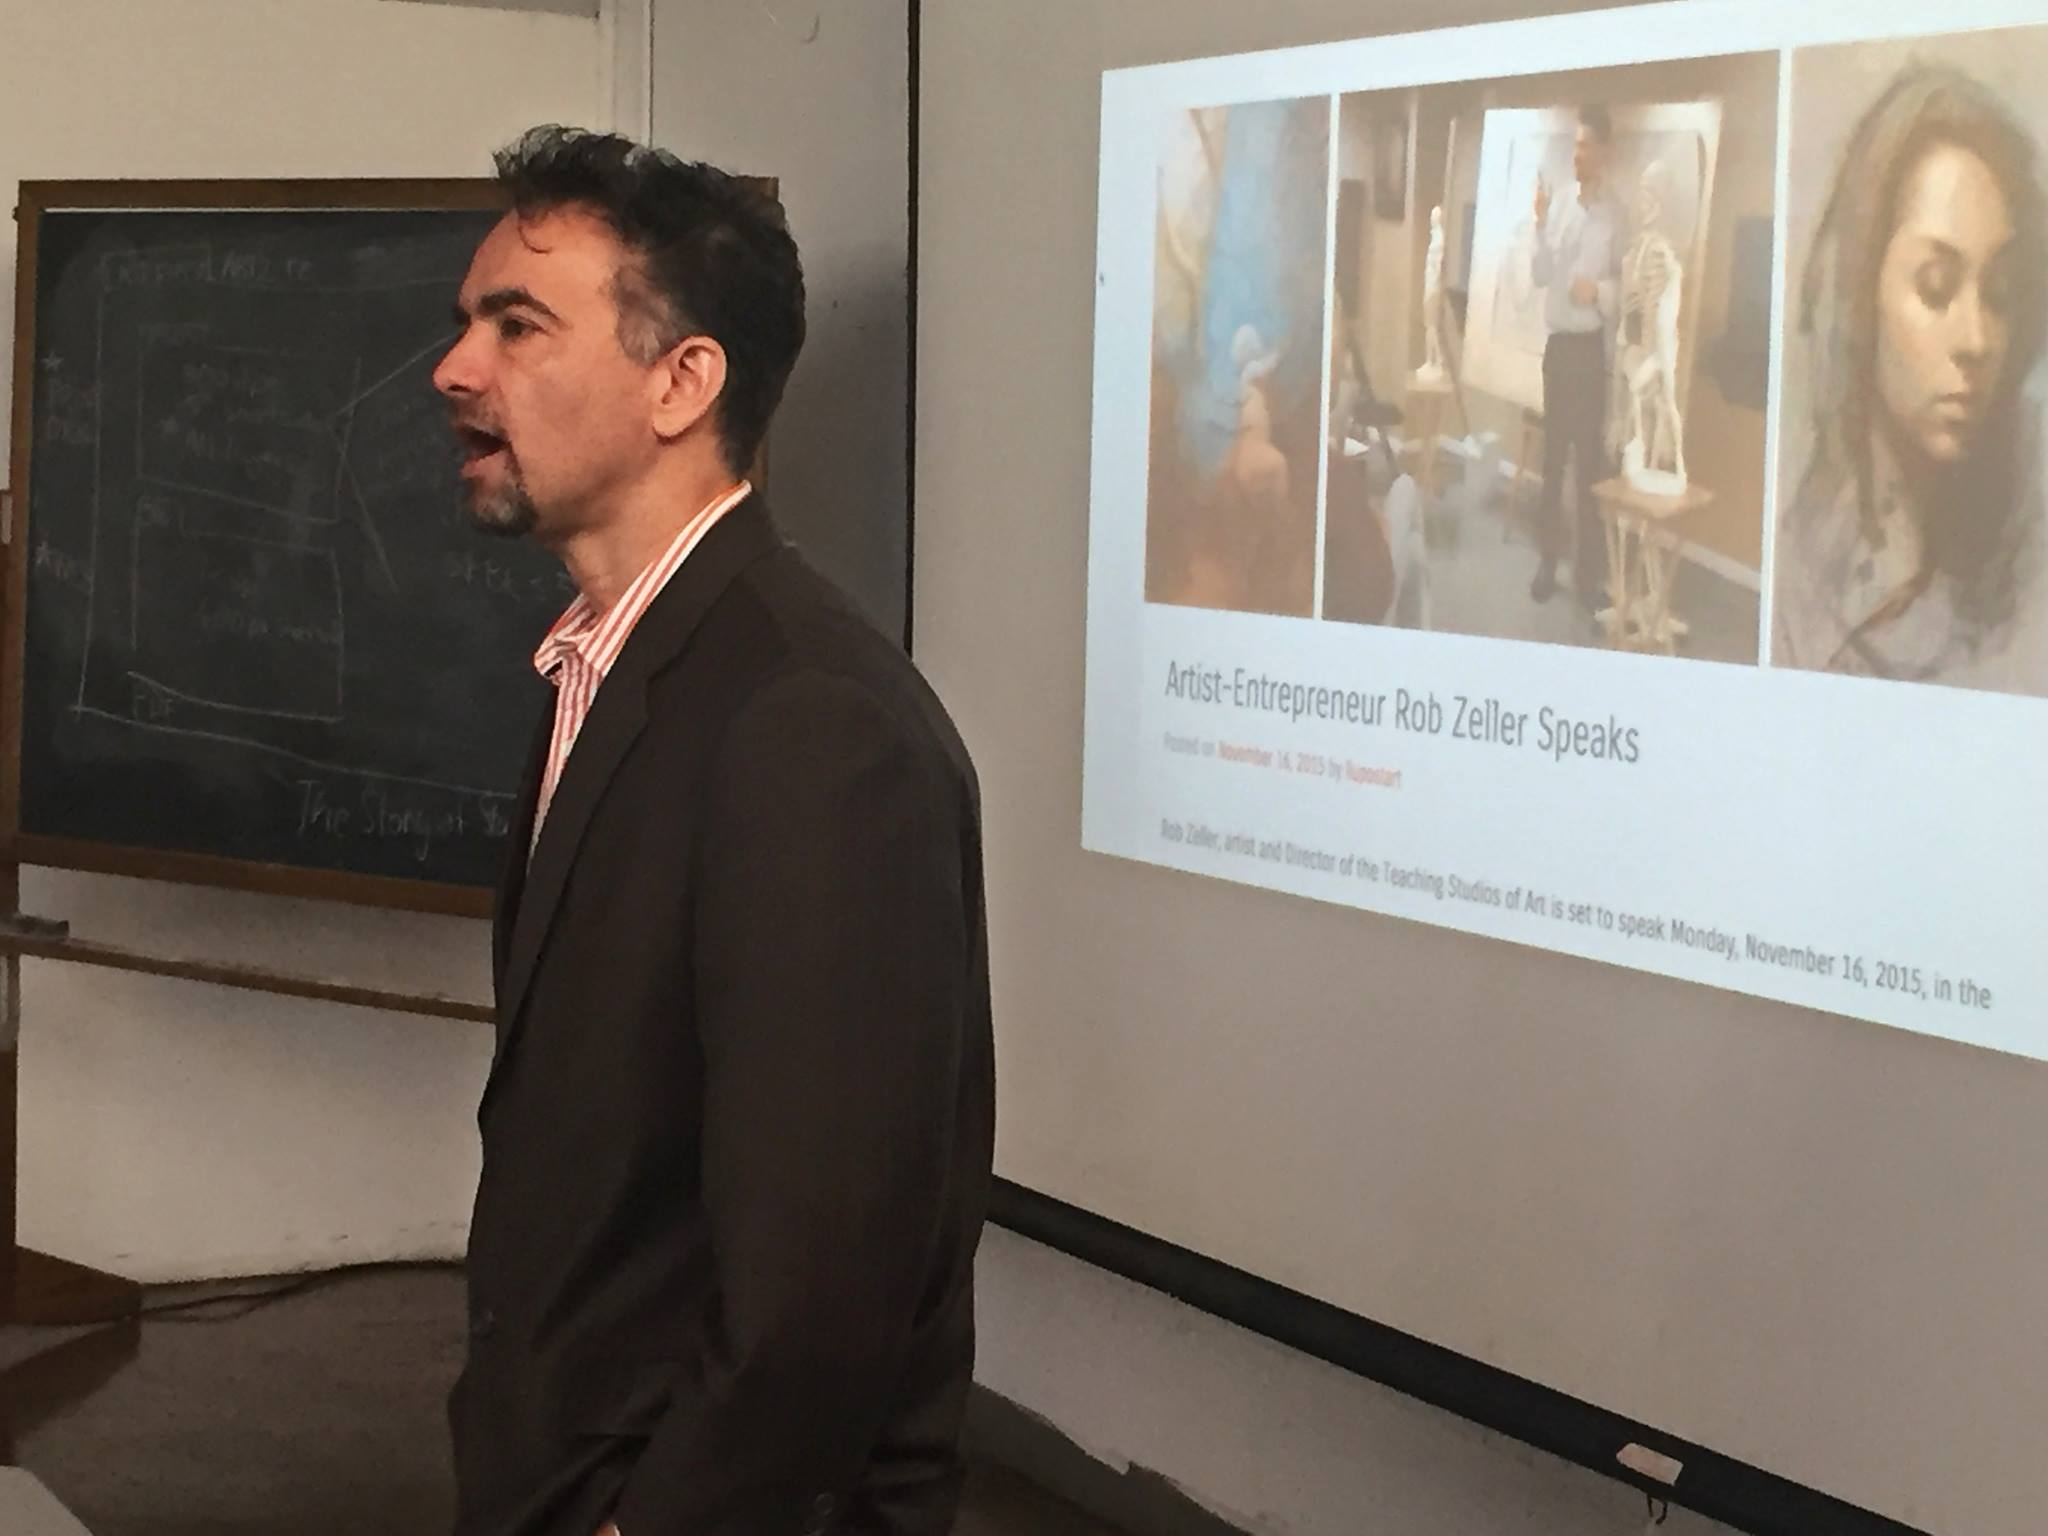 Zeller gives a lecture to students at Long Island University as part of their  Artist's Entrepreneurs Series.